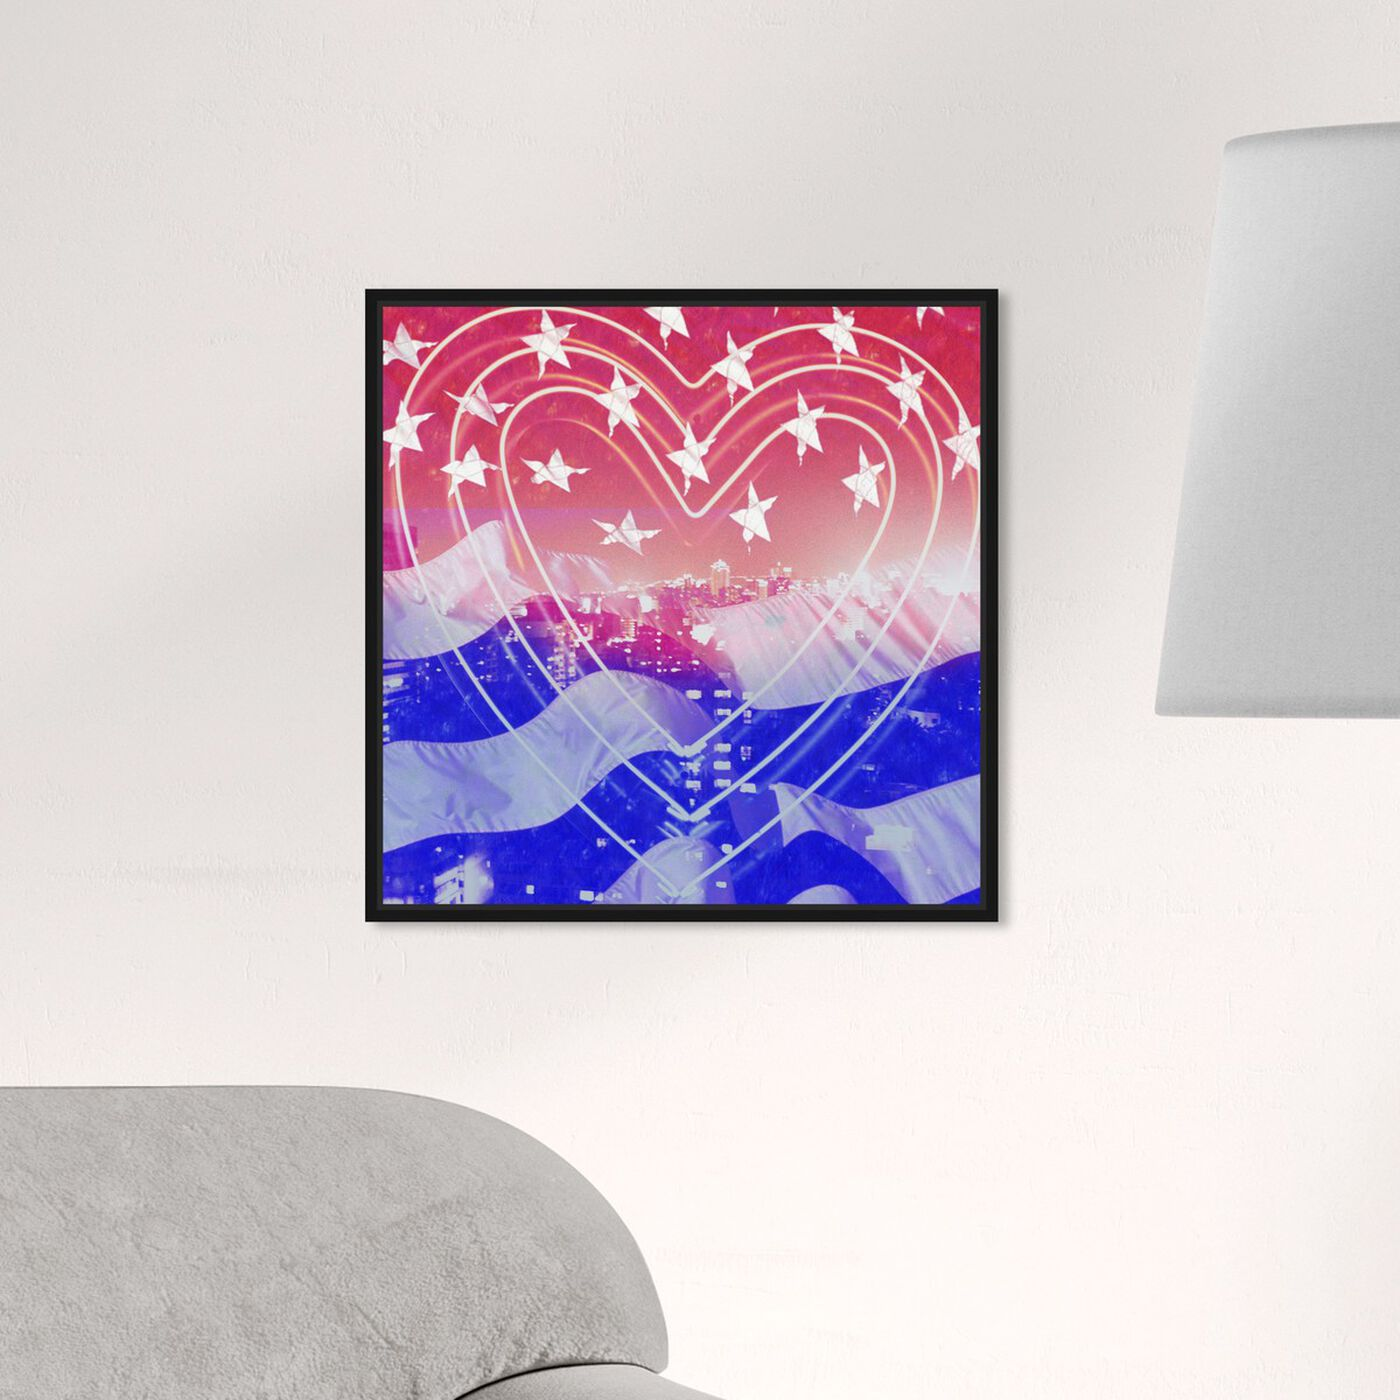 Hanging view of American Neon Heart featuring americana and patriotic and us flags art.